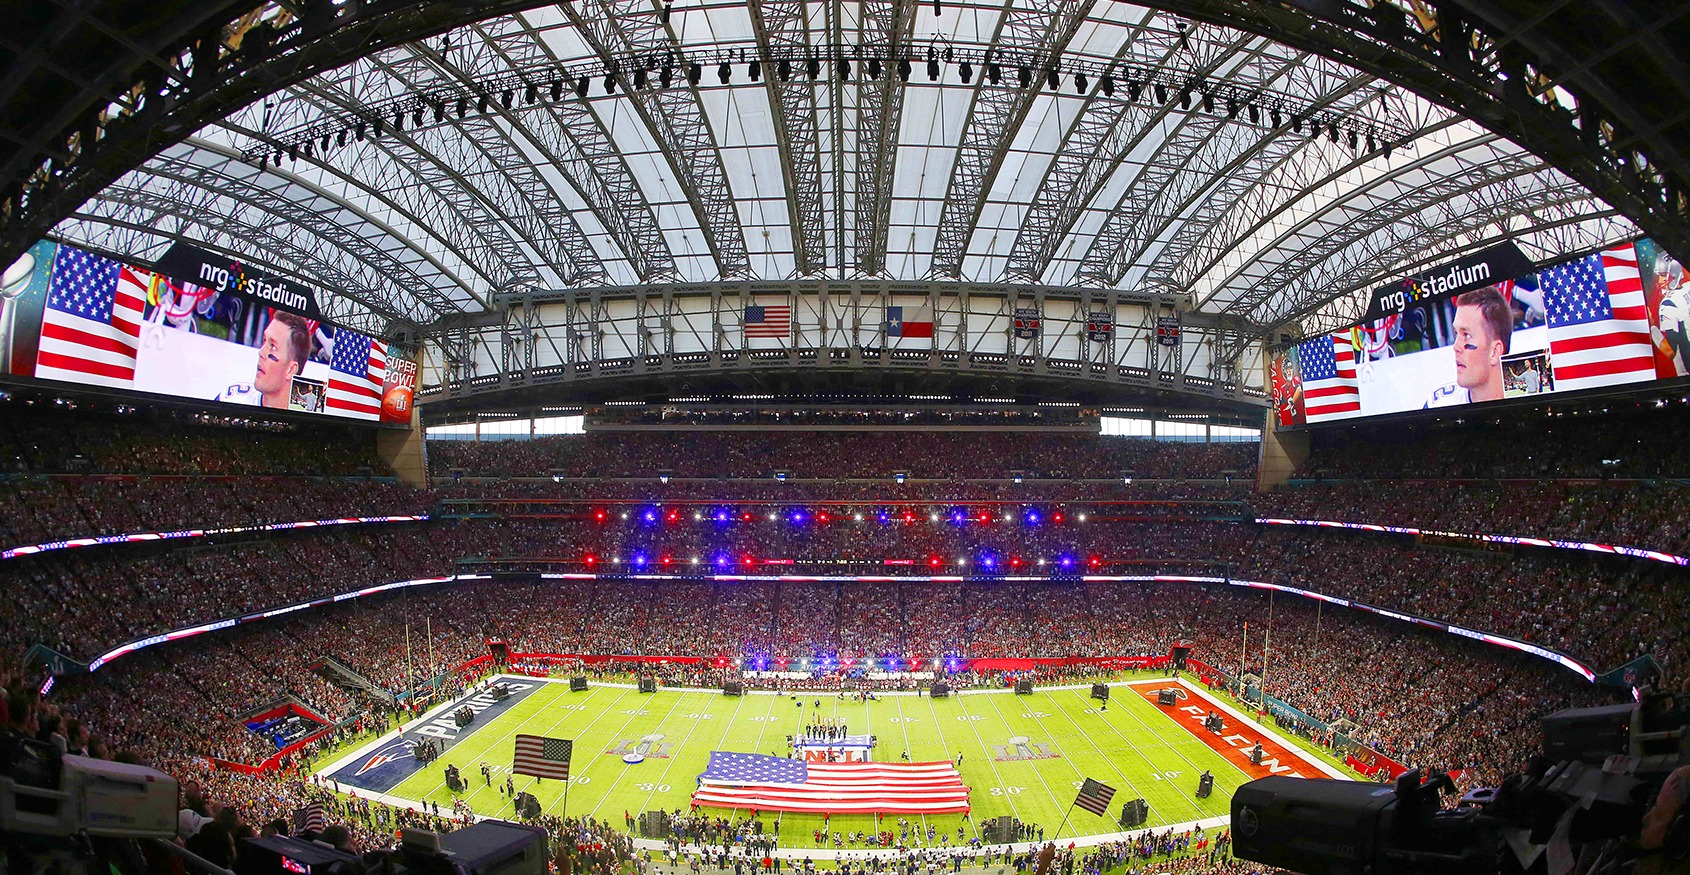 super bowl stadium with flag and crowds